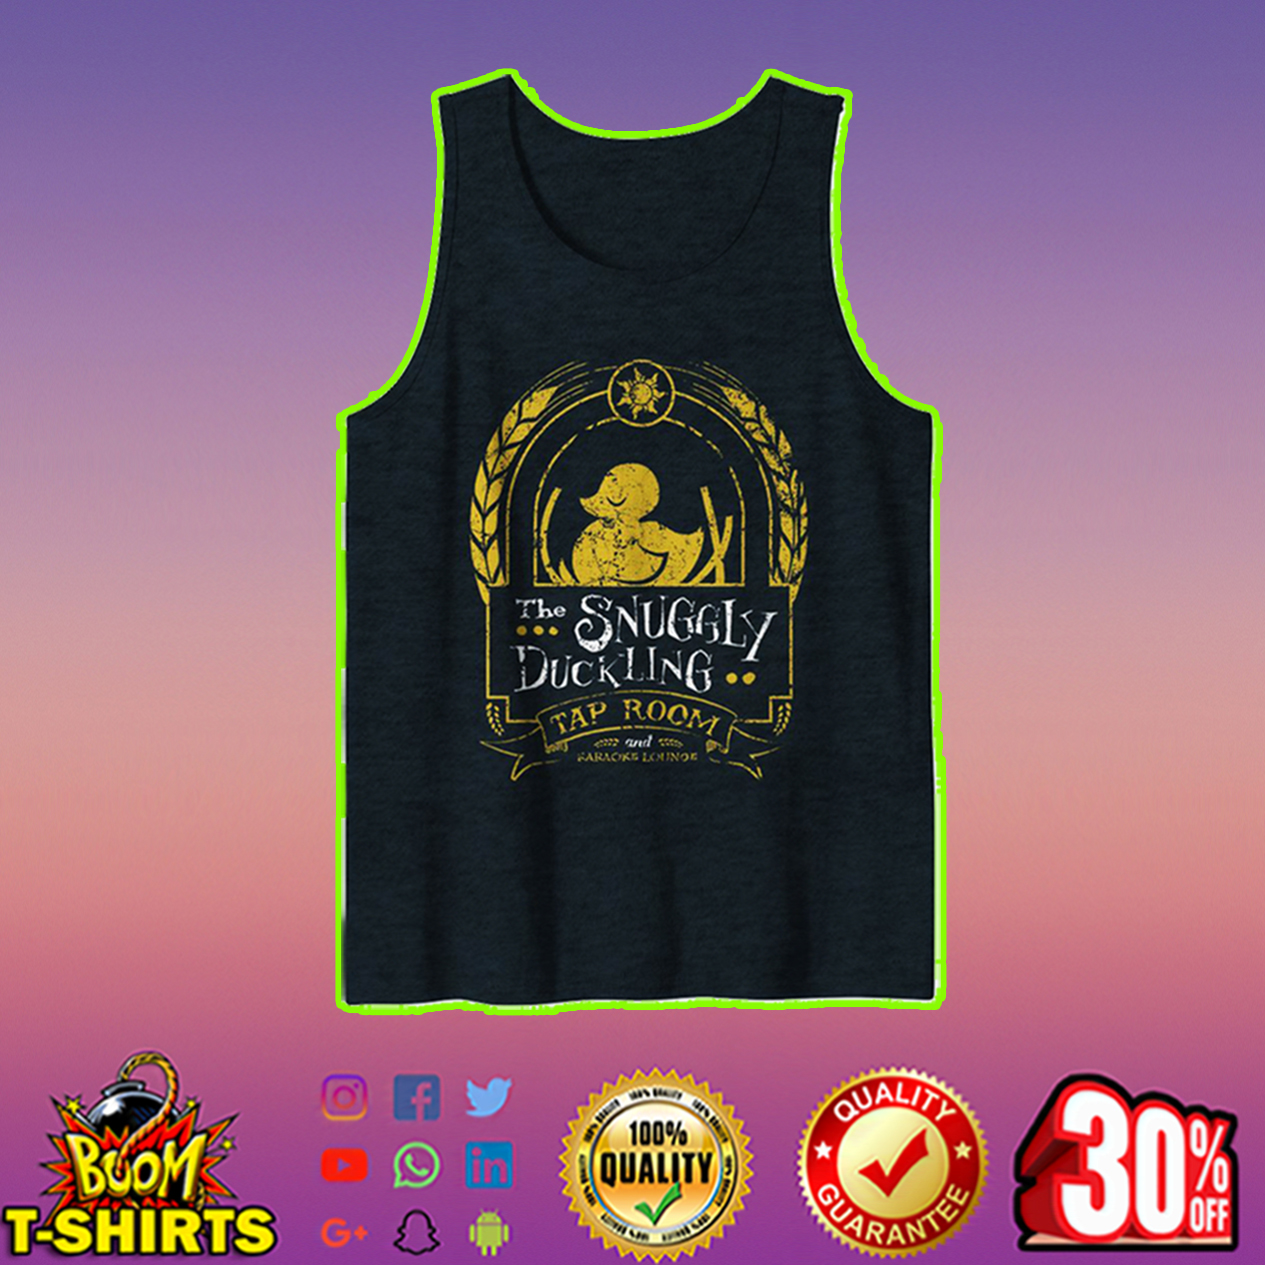 The Snuggly Duckling Tap Room tank top